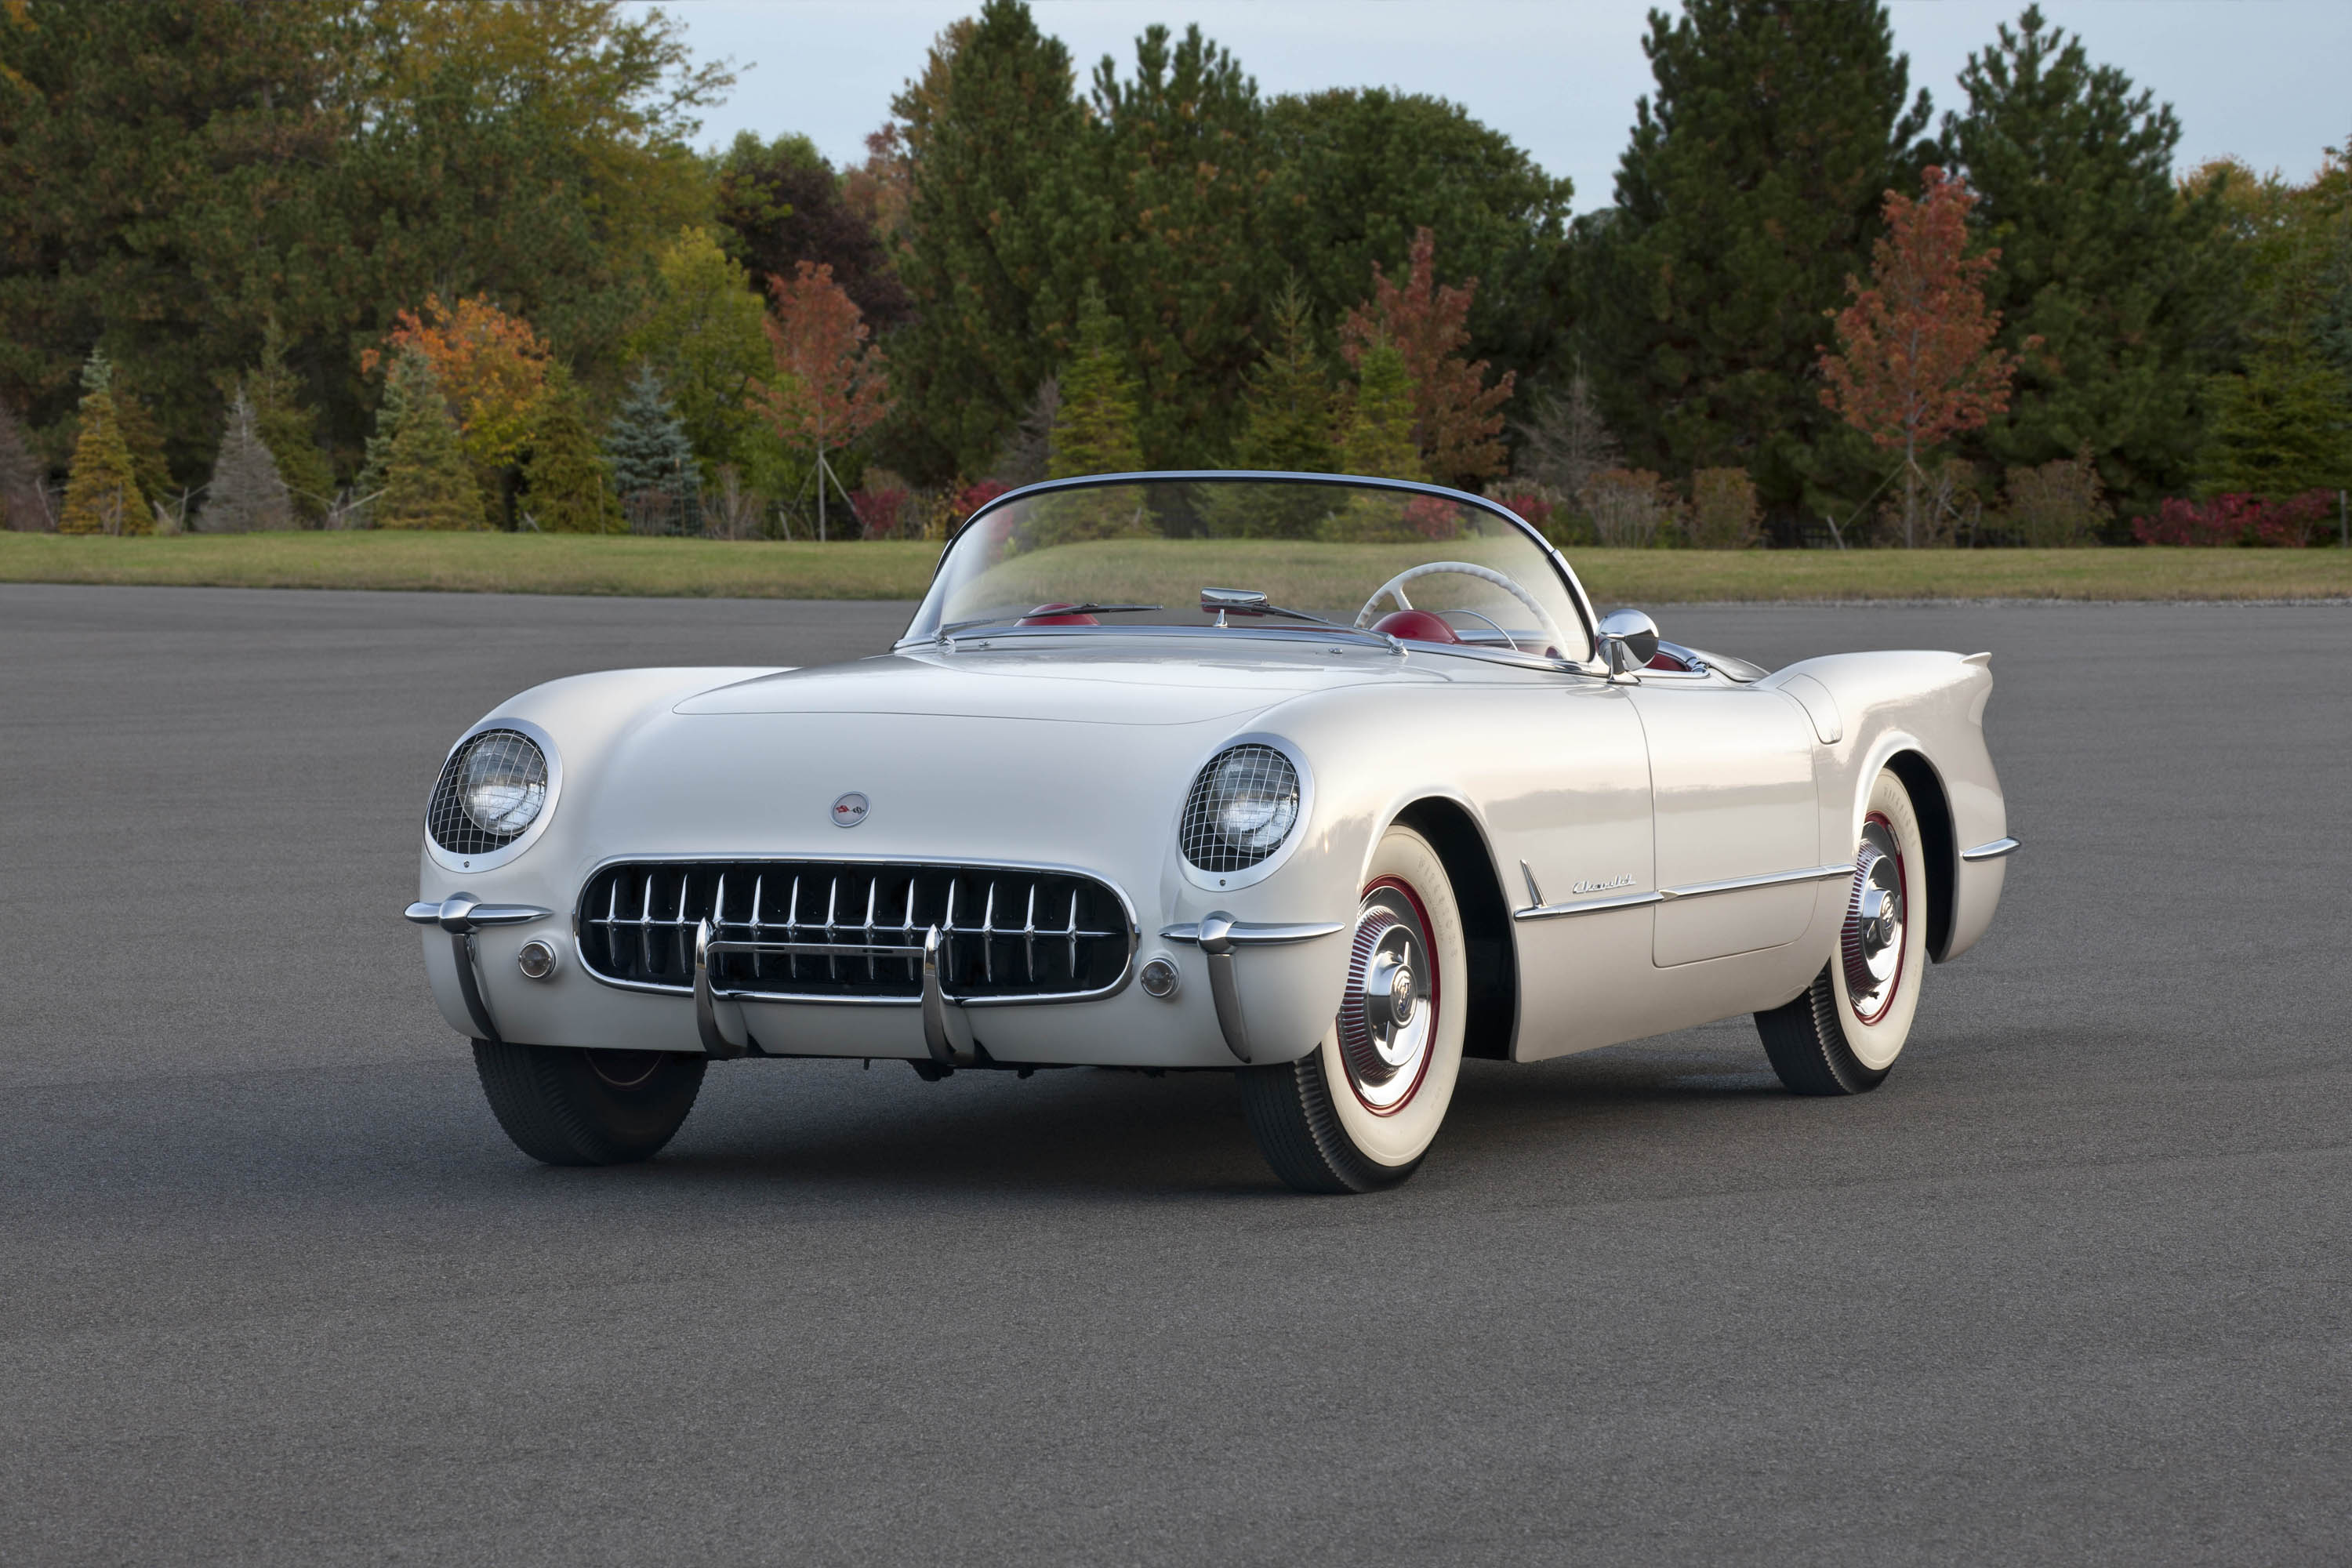 Chevrolet celebrates nearly seven decades of the iconic Corvette